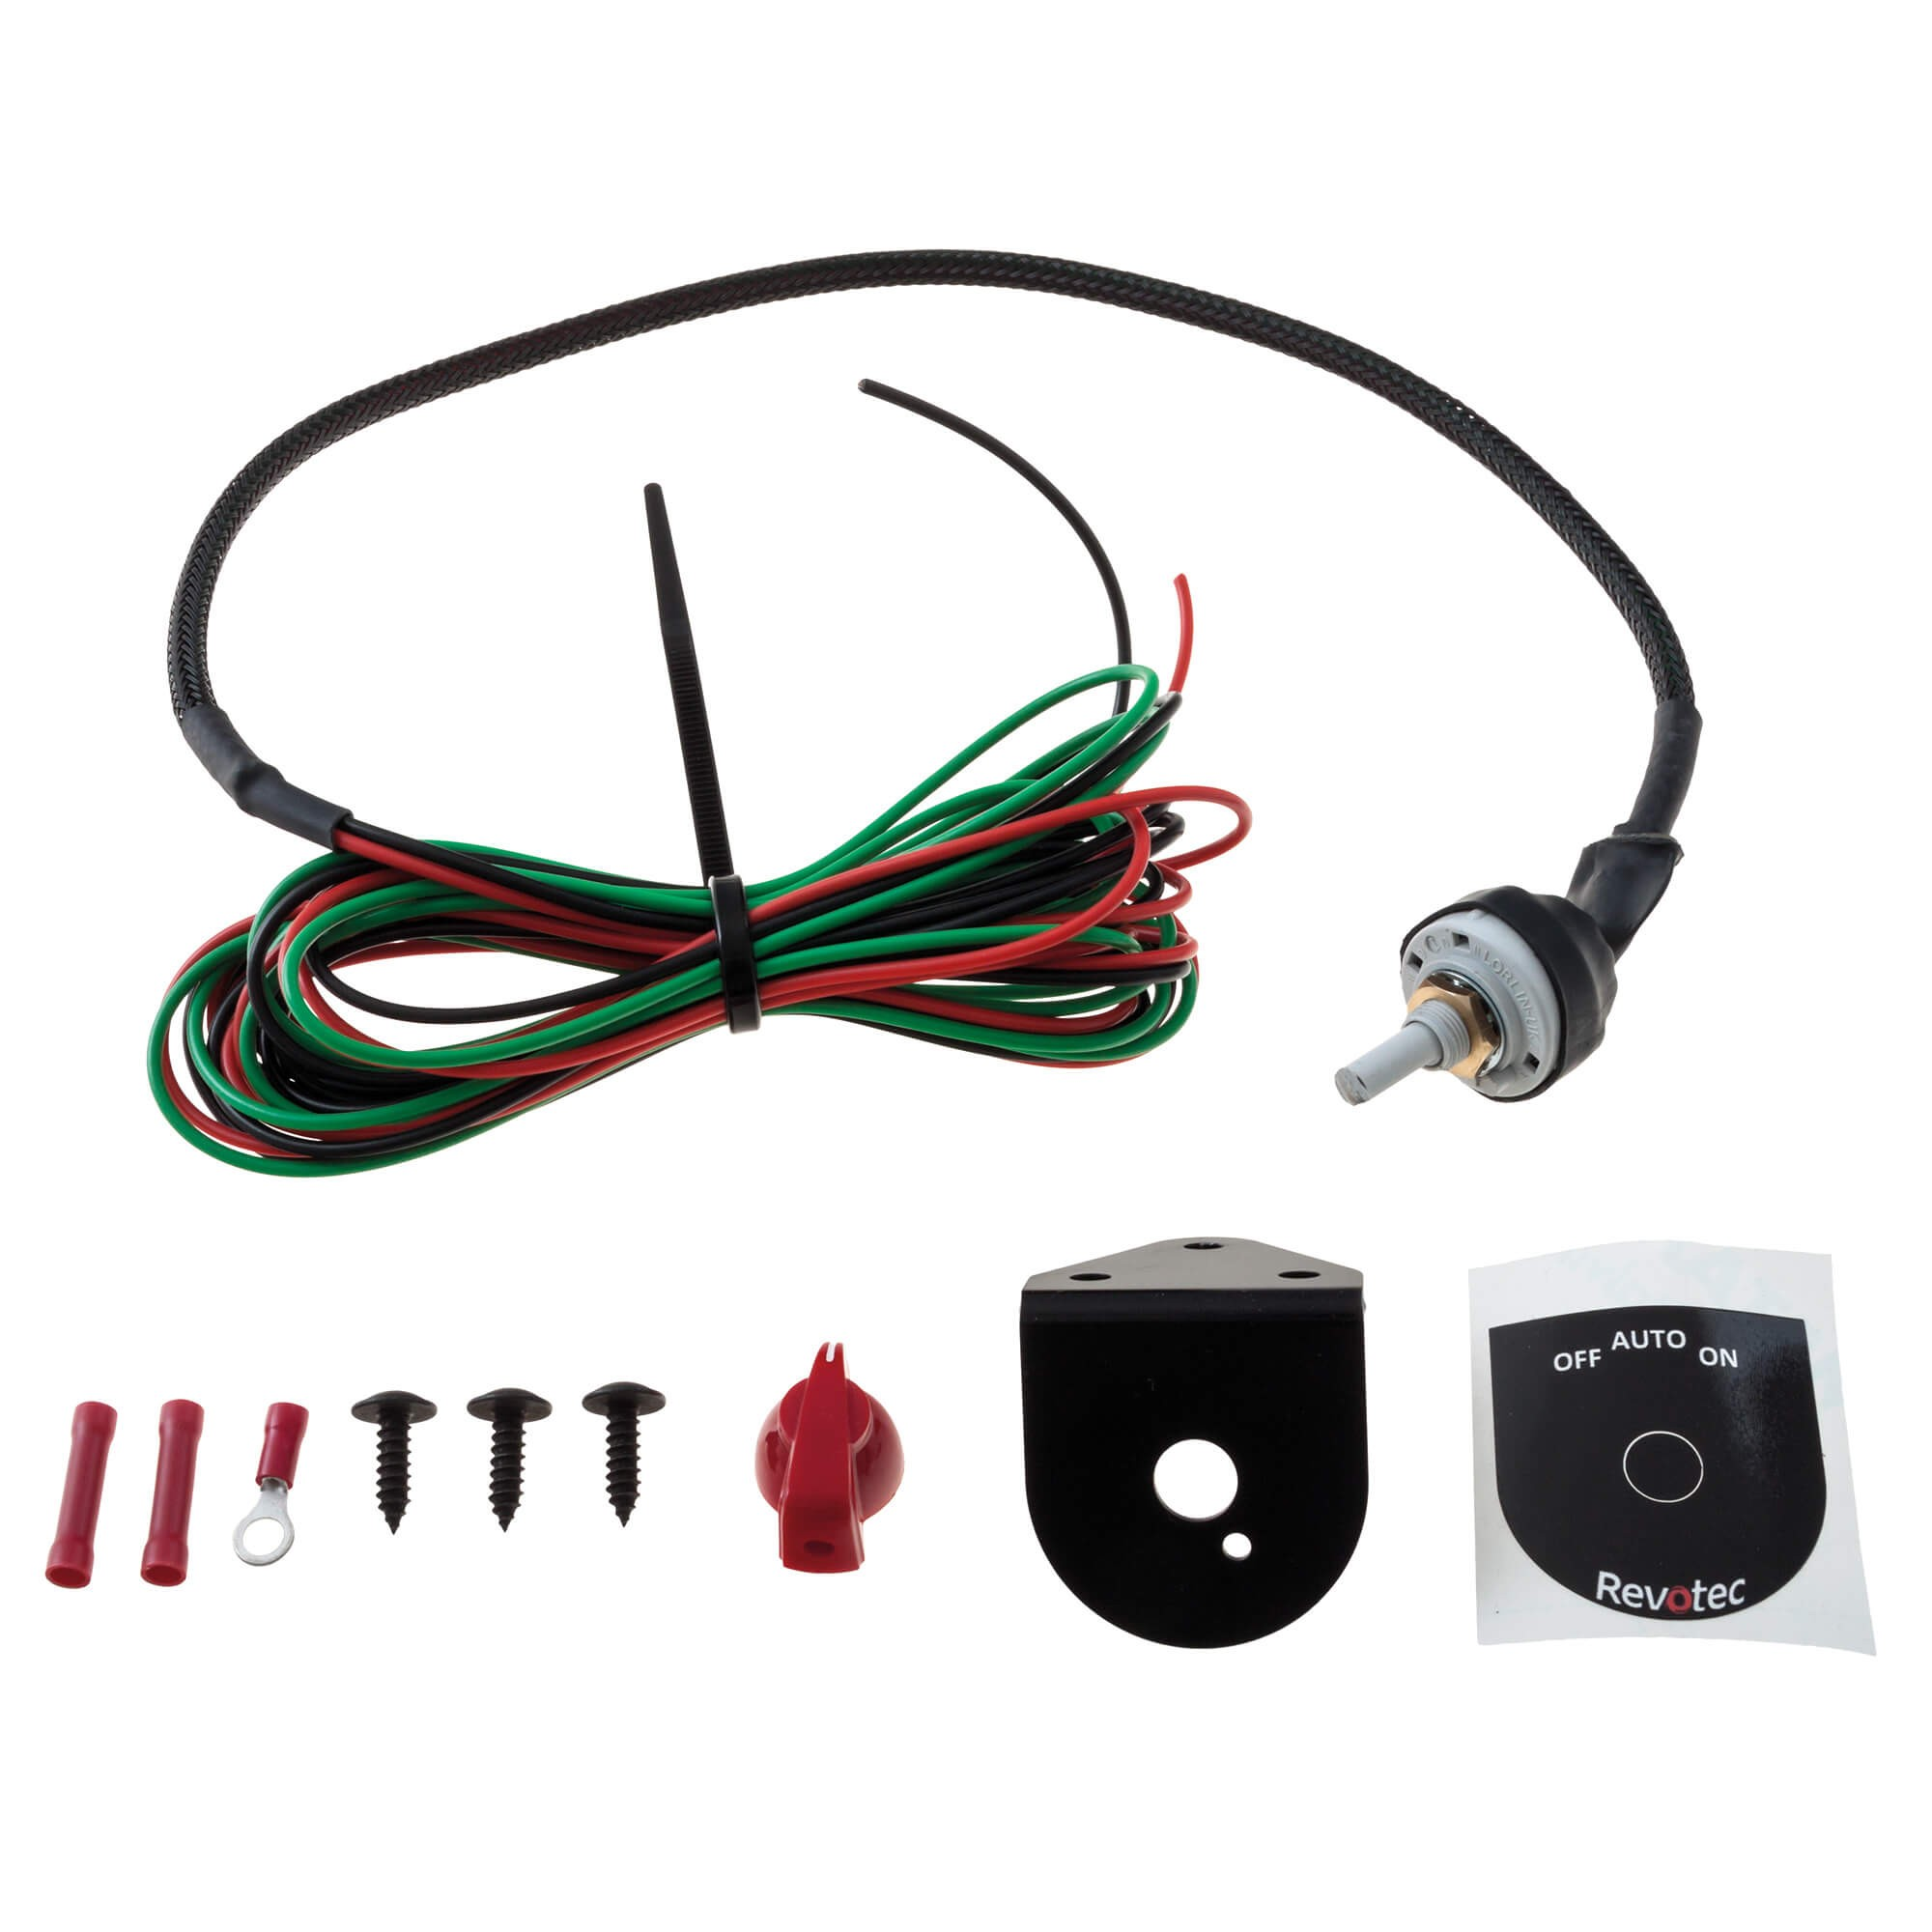 231 725 Revotec Manual Override Switch Moss Motors Wiring Mechanical Rotary Switches